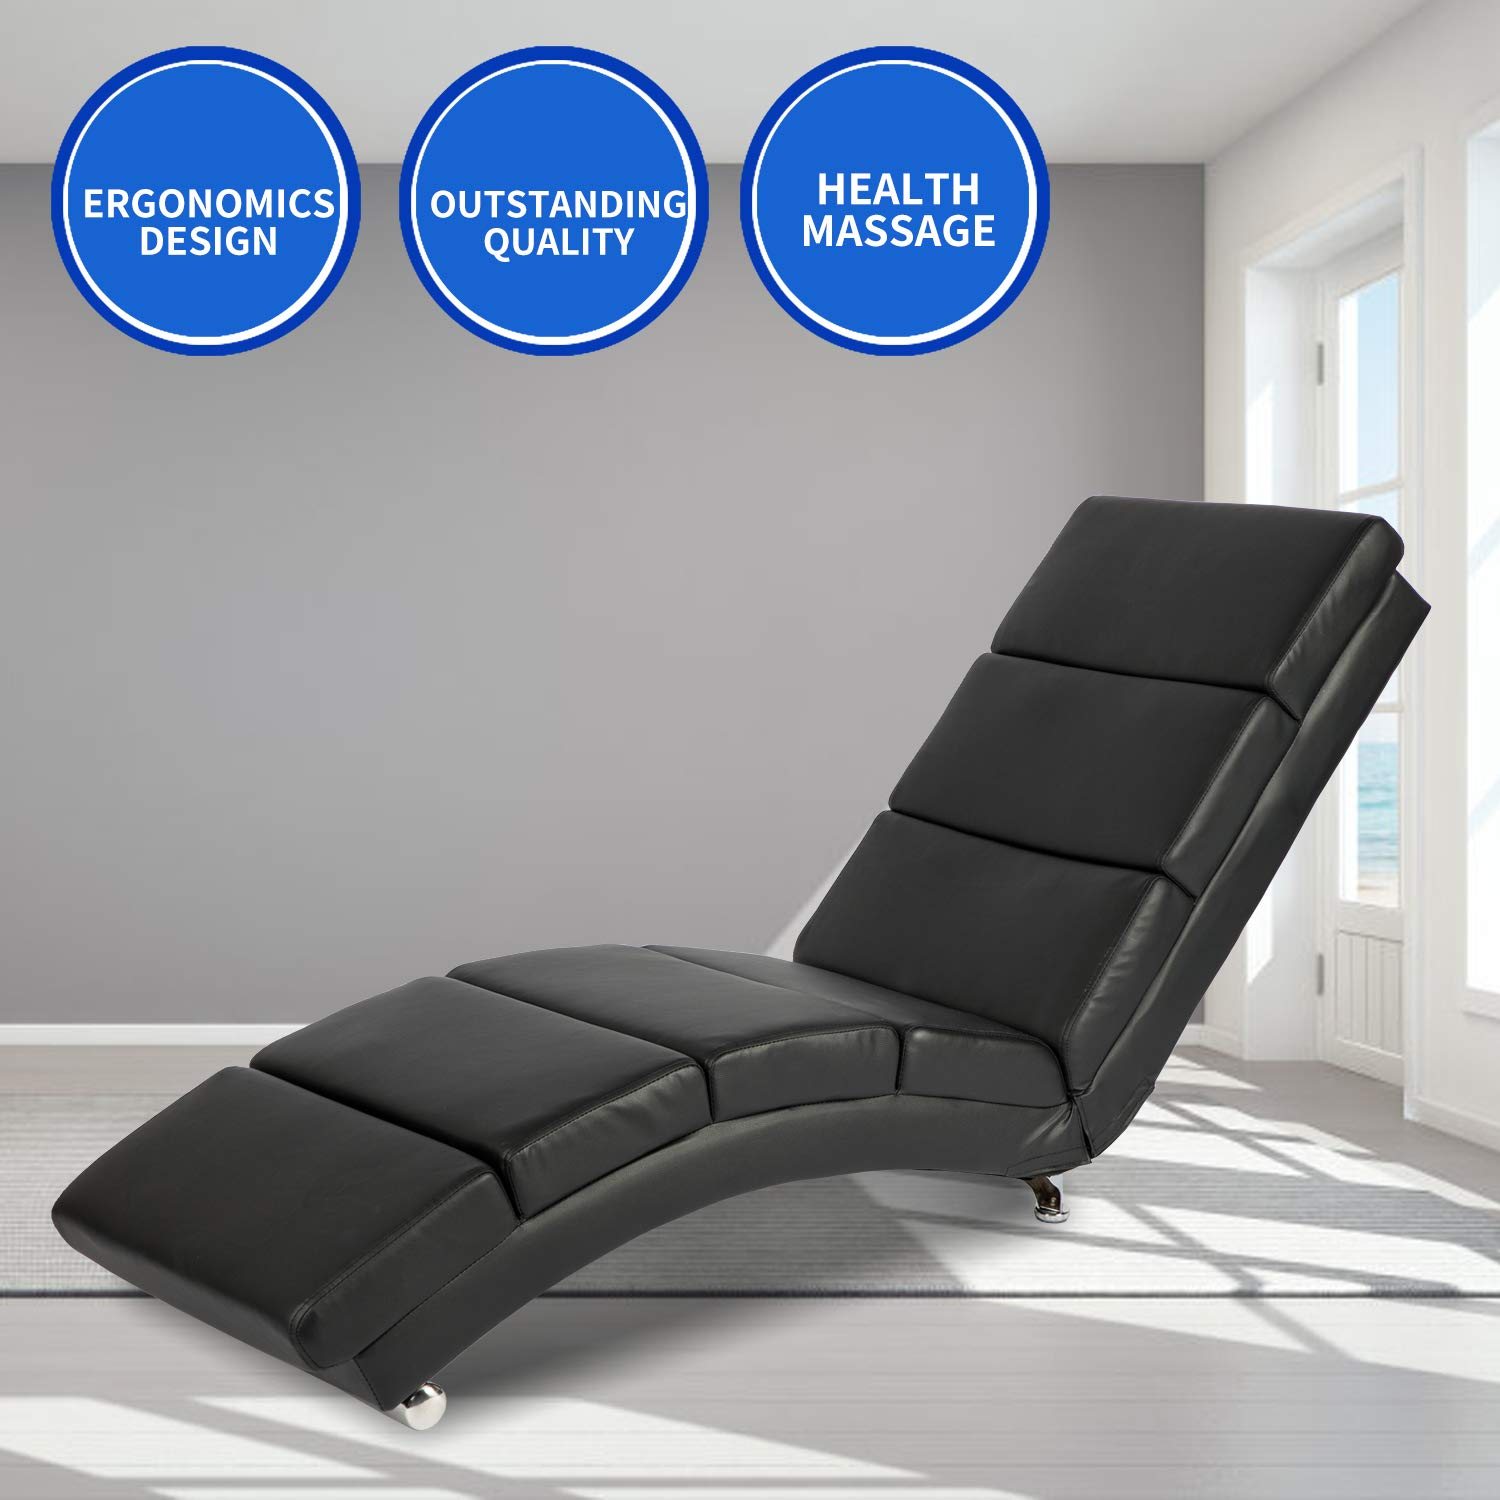 Aoxun Massage Recliner Chair - Leather Ergonomic Modern Upholstered Chaise Lounge for Indoor Furniture (Black) by Aoxun